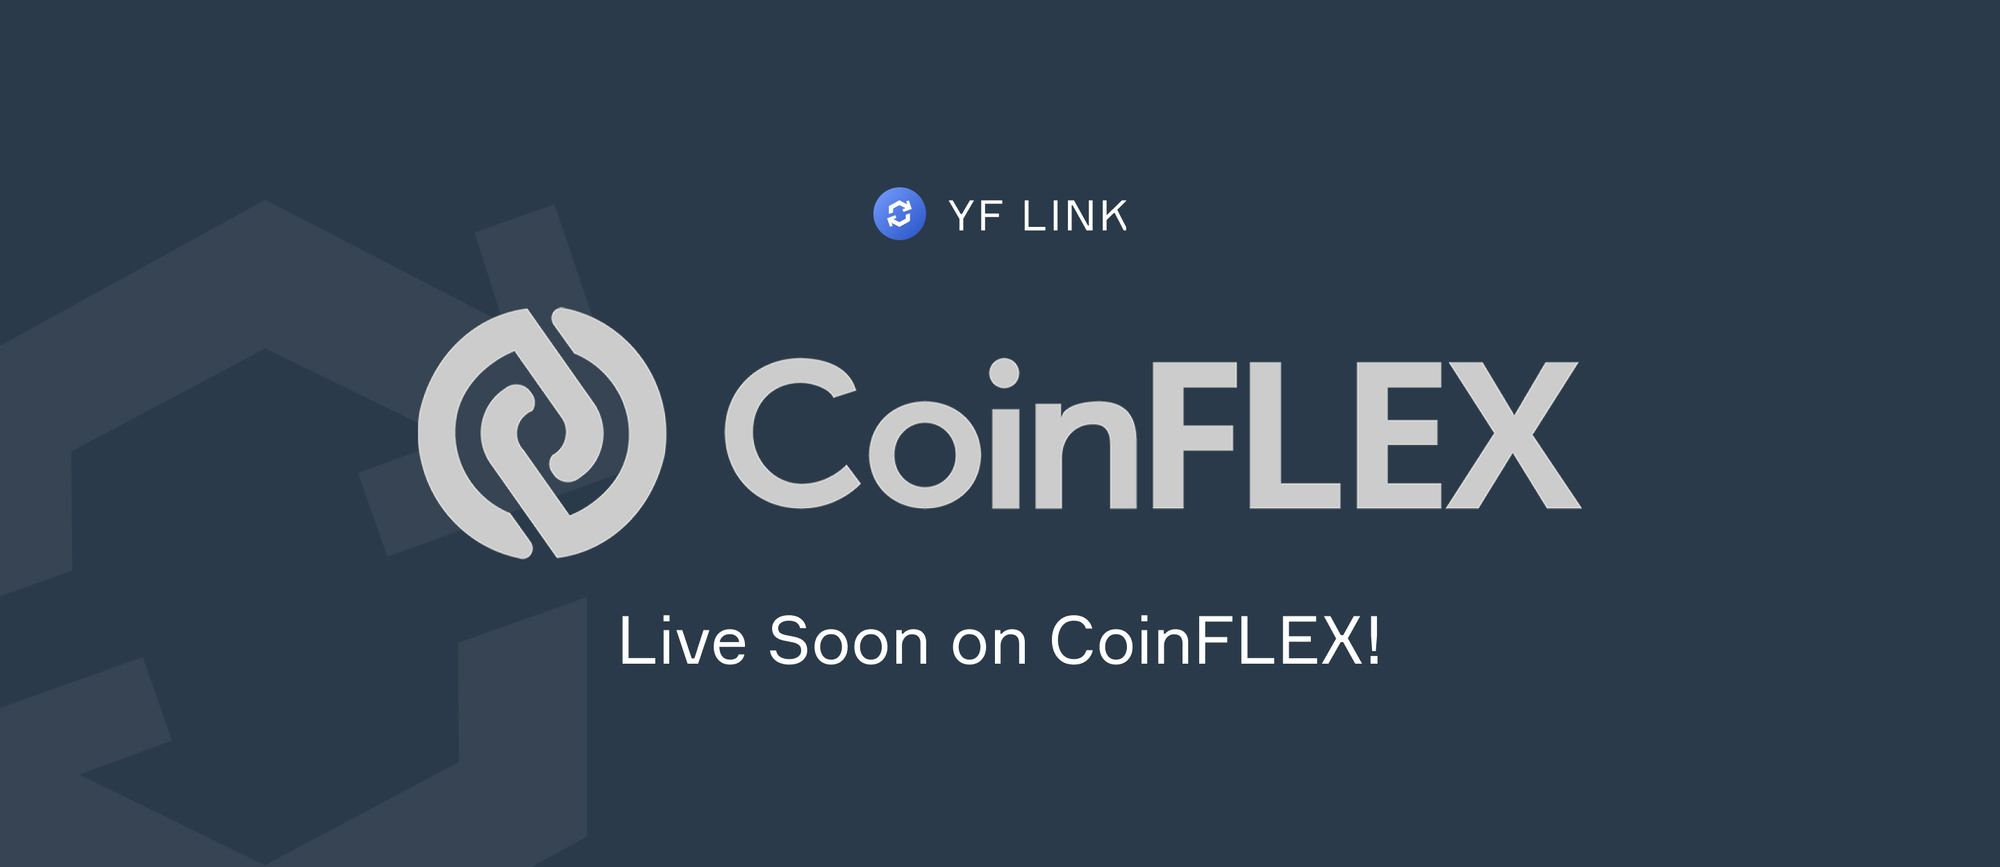 YF Link Trading on CoinFLEX!